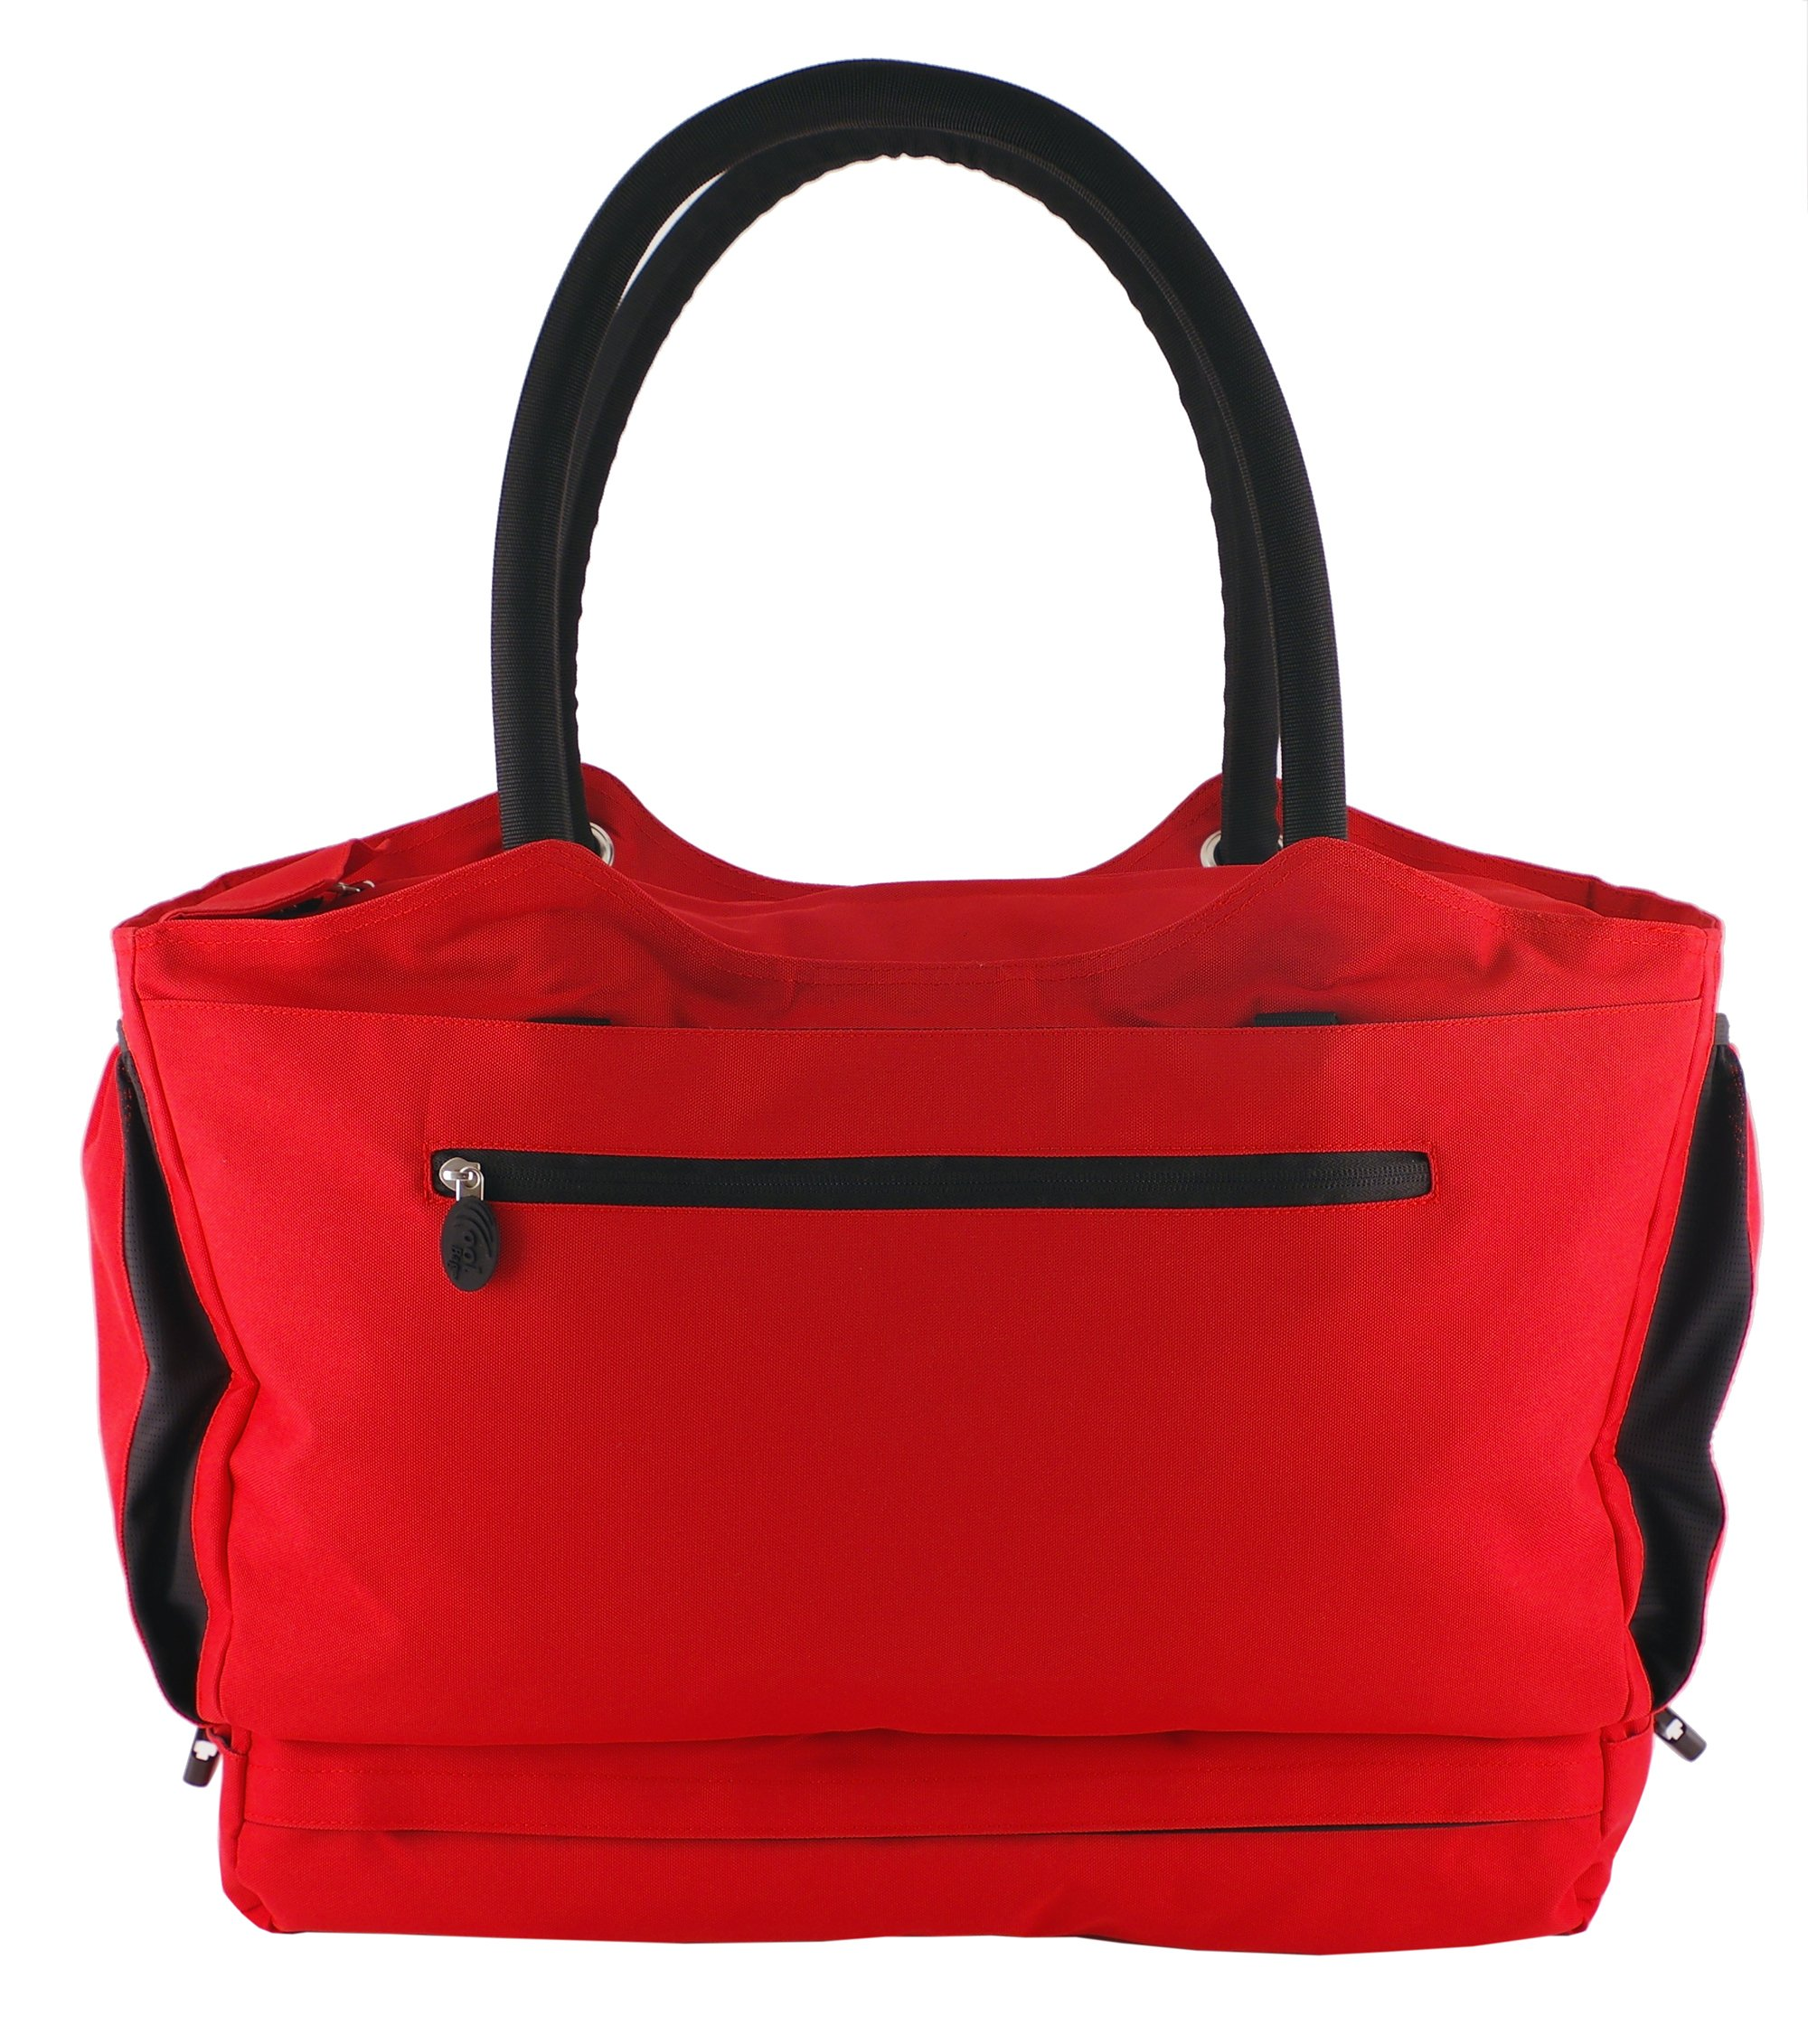 CoolBag Gen 2 Locking Anti-Theft Travel Tote With Insulated Cooler Compartment - (Riviera Red) by CoolBag